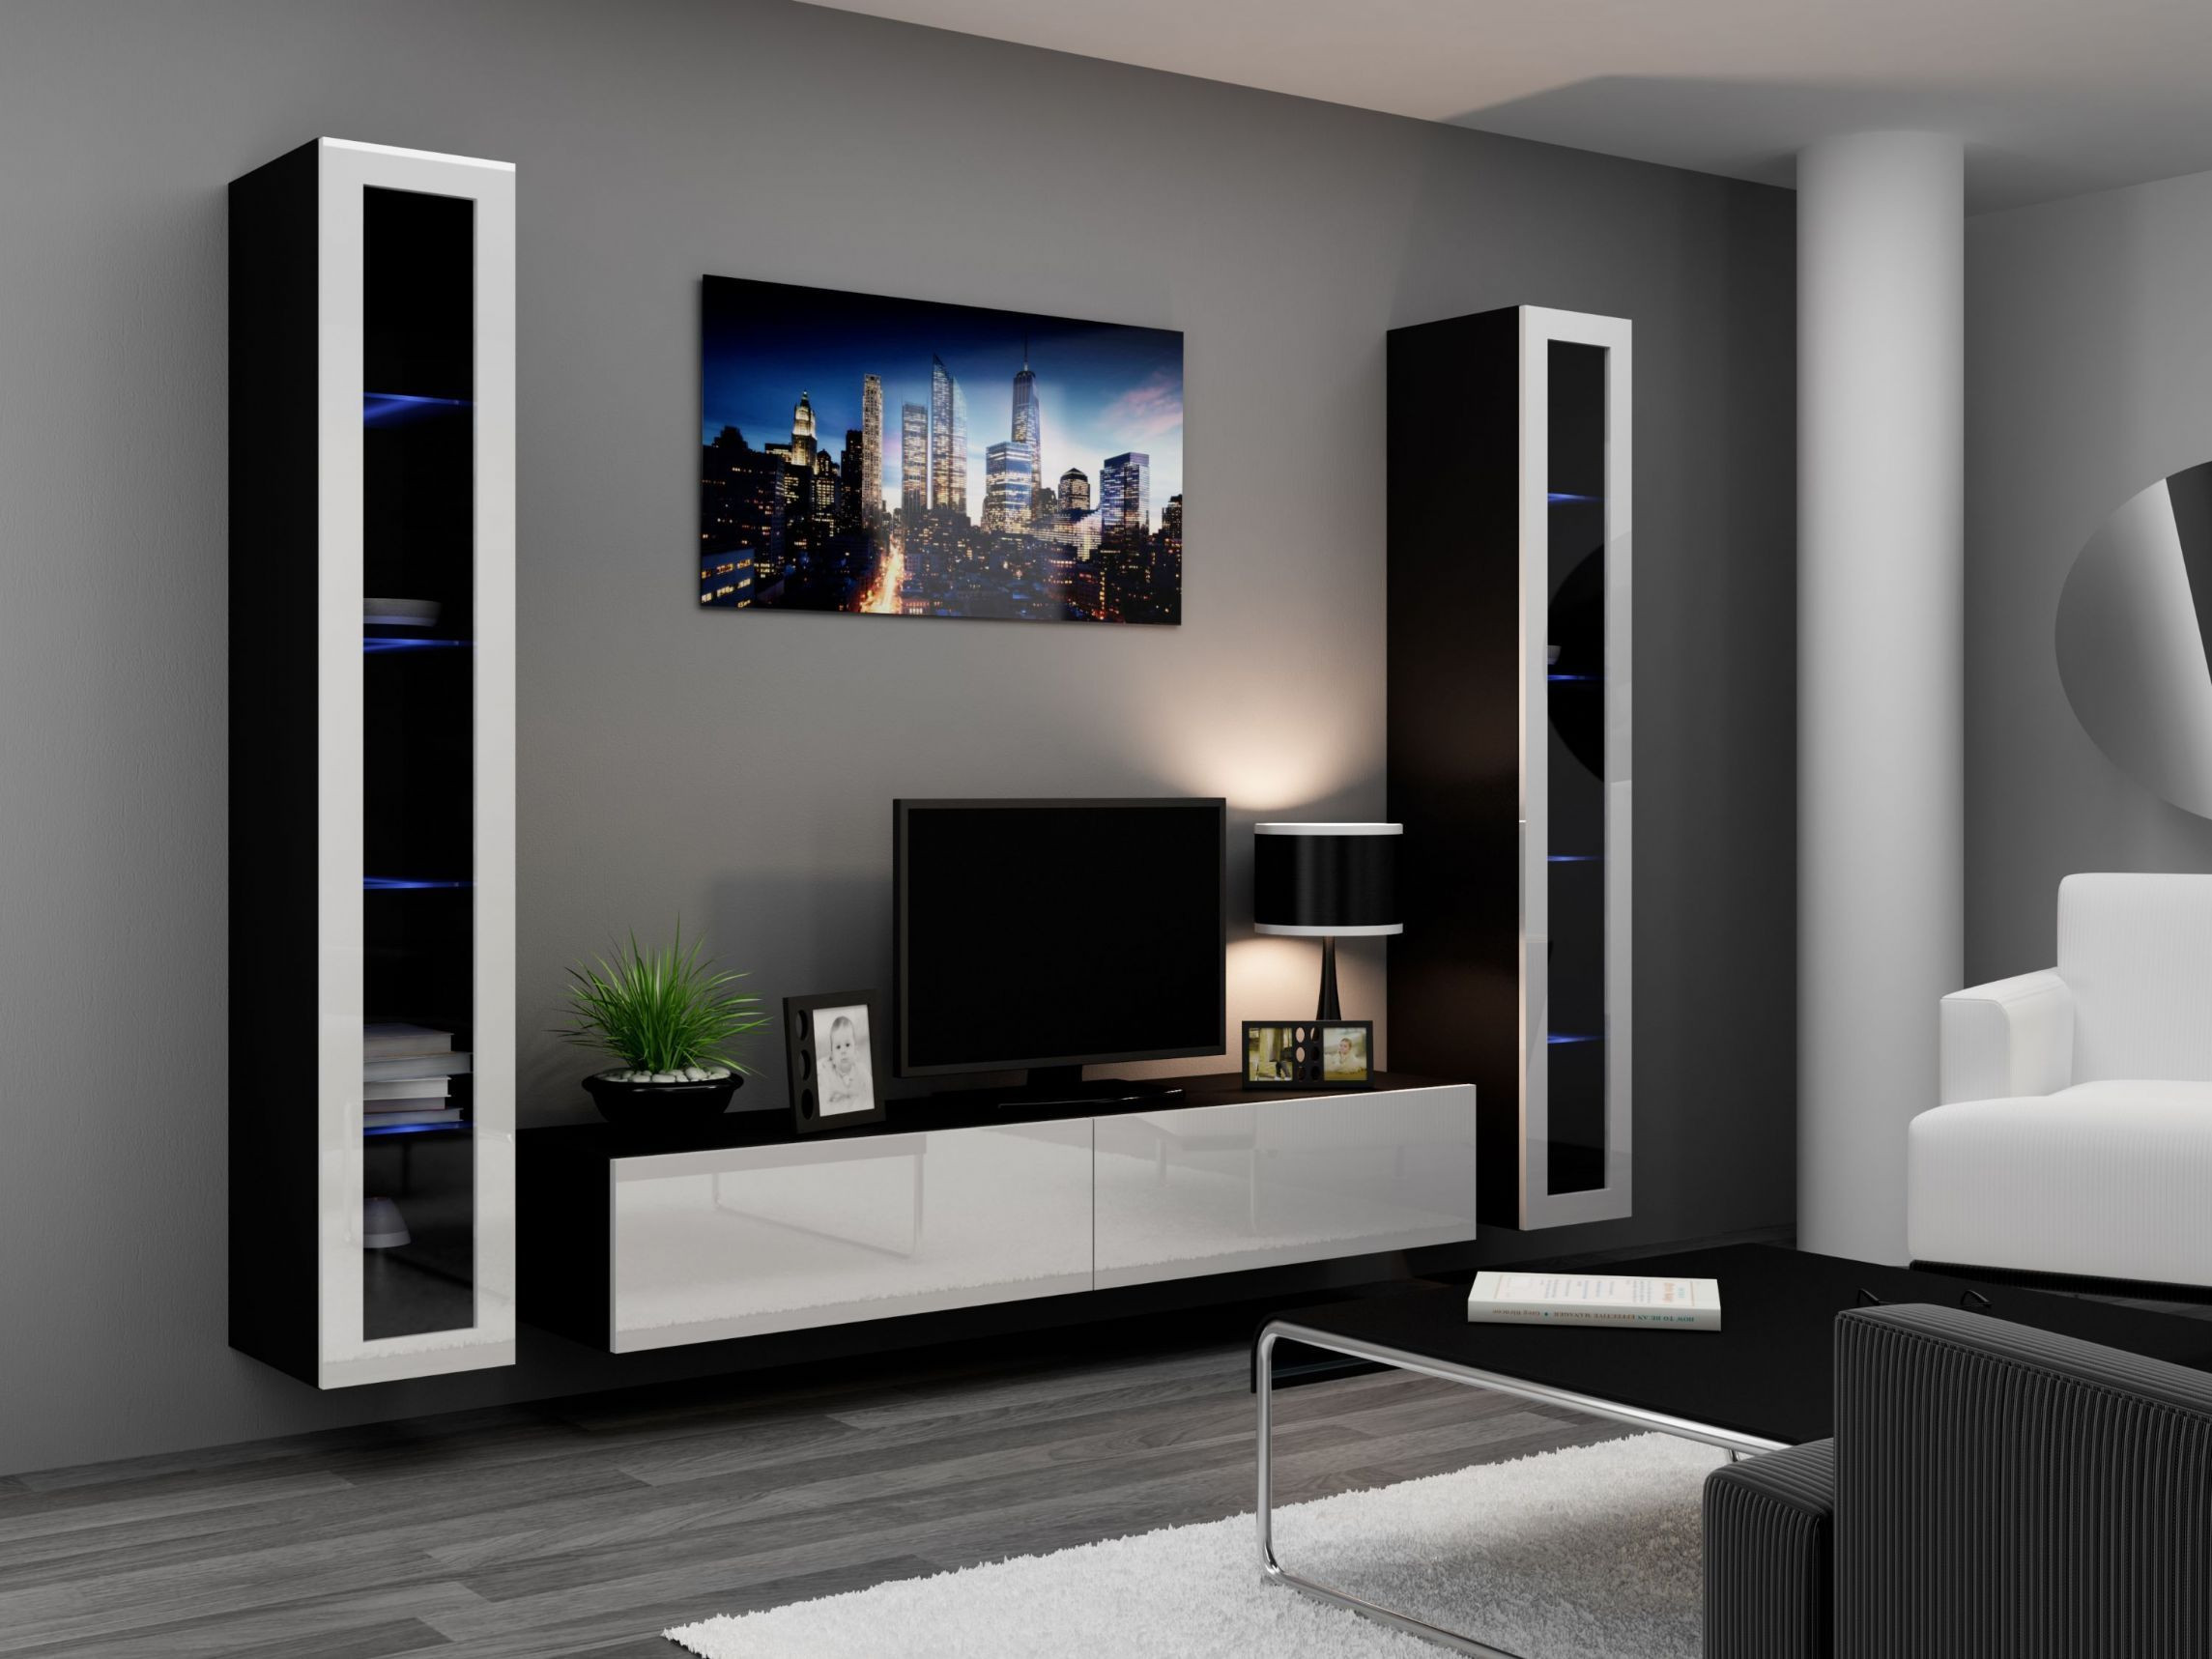 Muebles Para Tv Modernos Innovador Muebles Para Tv Modernos Of Muebles Para Tv Modernos Adorable Decore On Pinterest